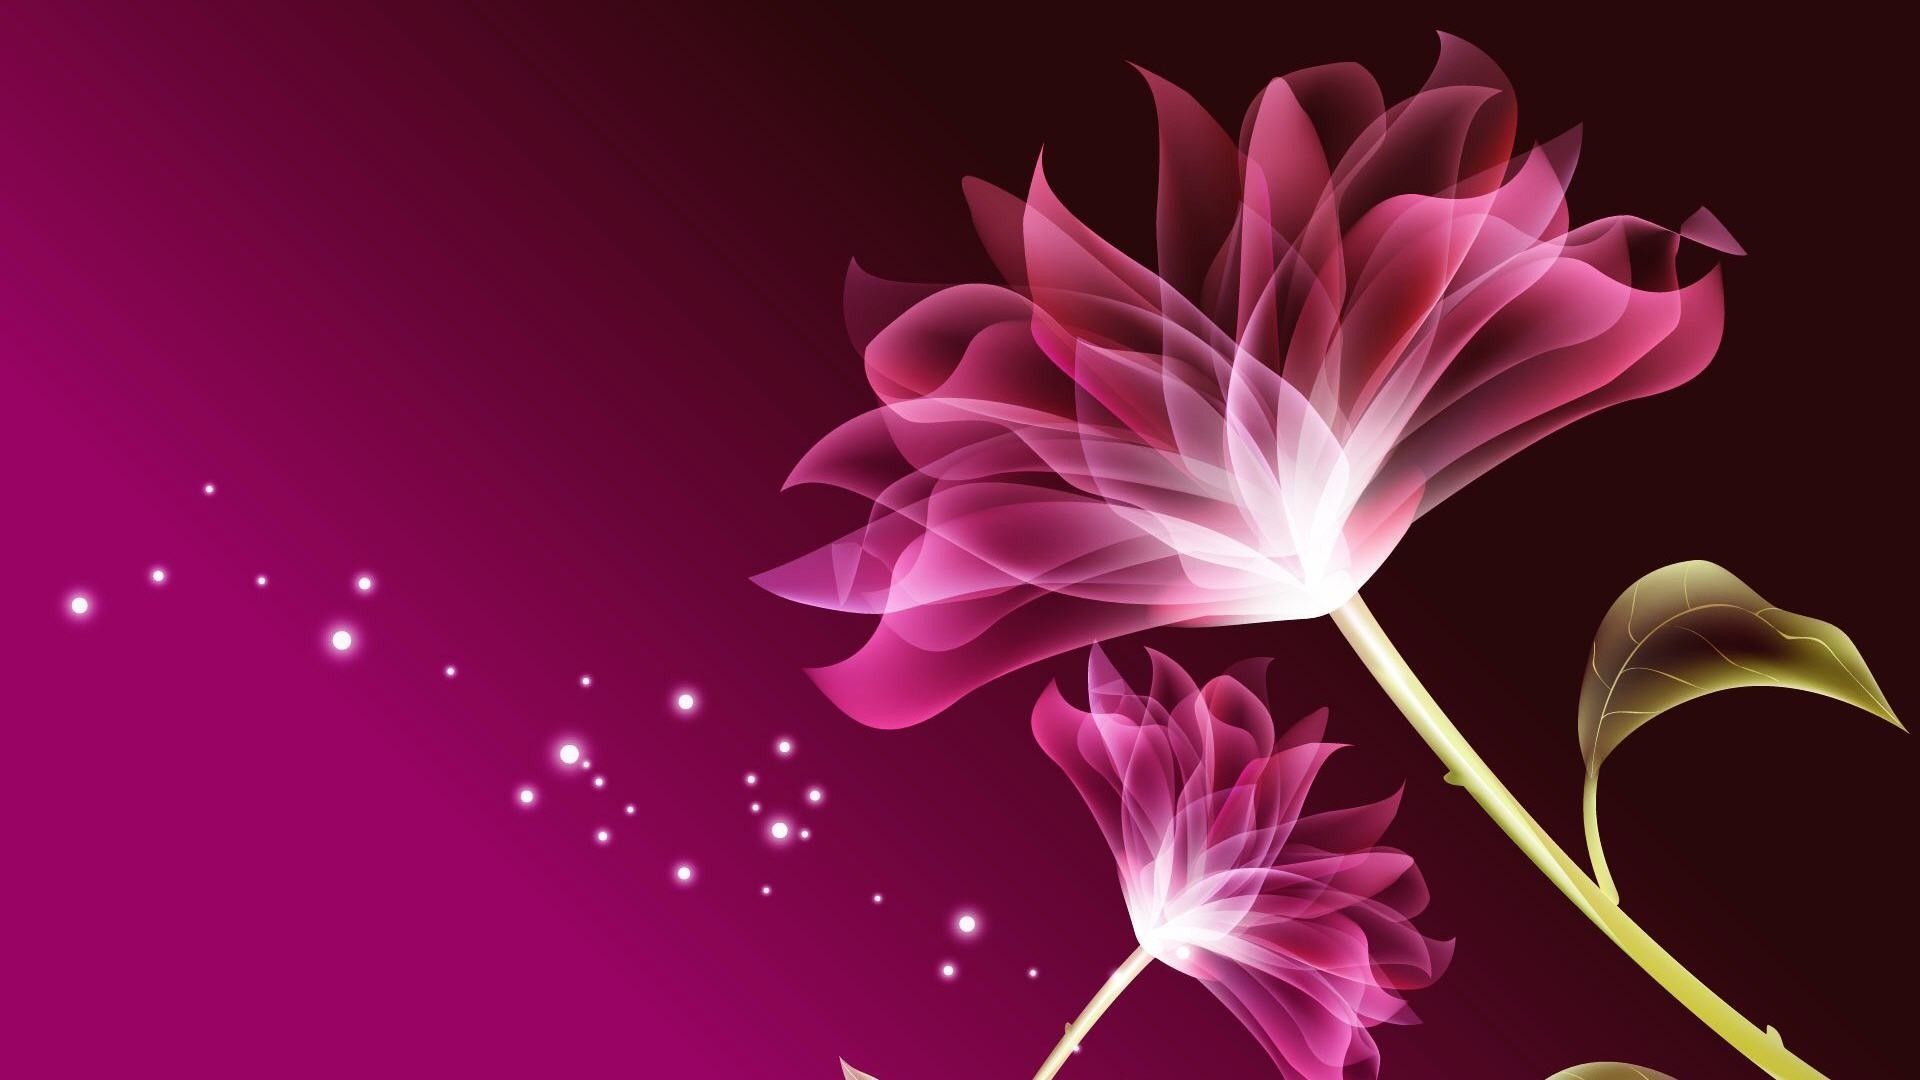 Beautiful flowers wallpaper 60 images 1920x1080 3d pink beautiful flower wallpaper izmirmasajfo